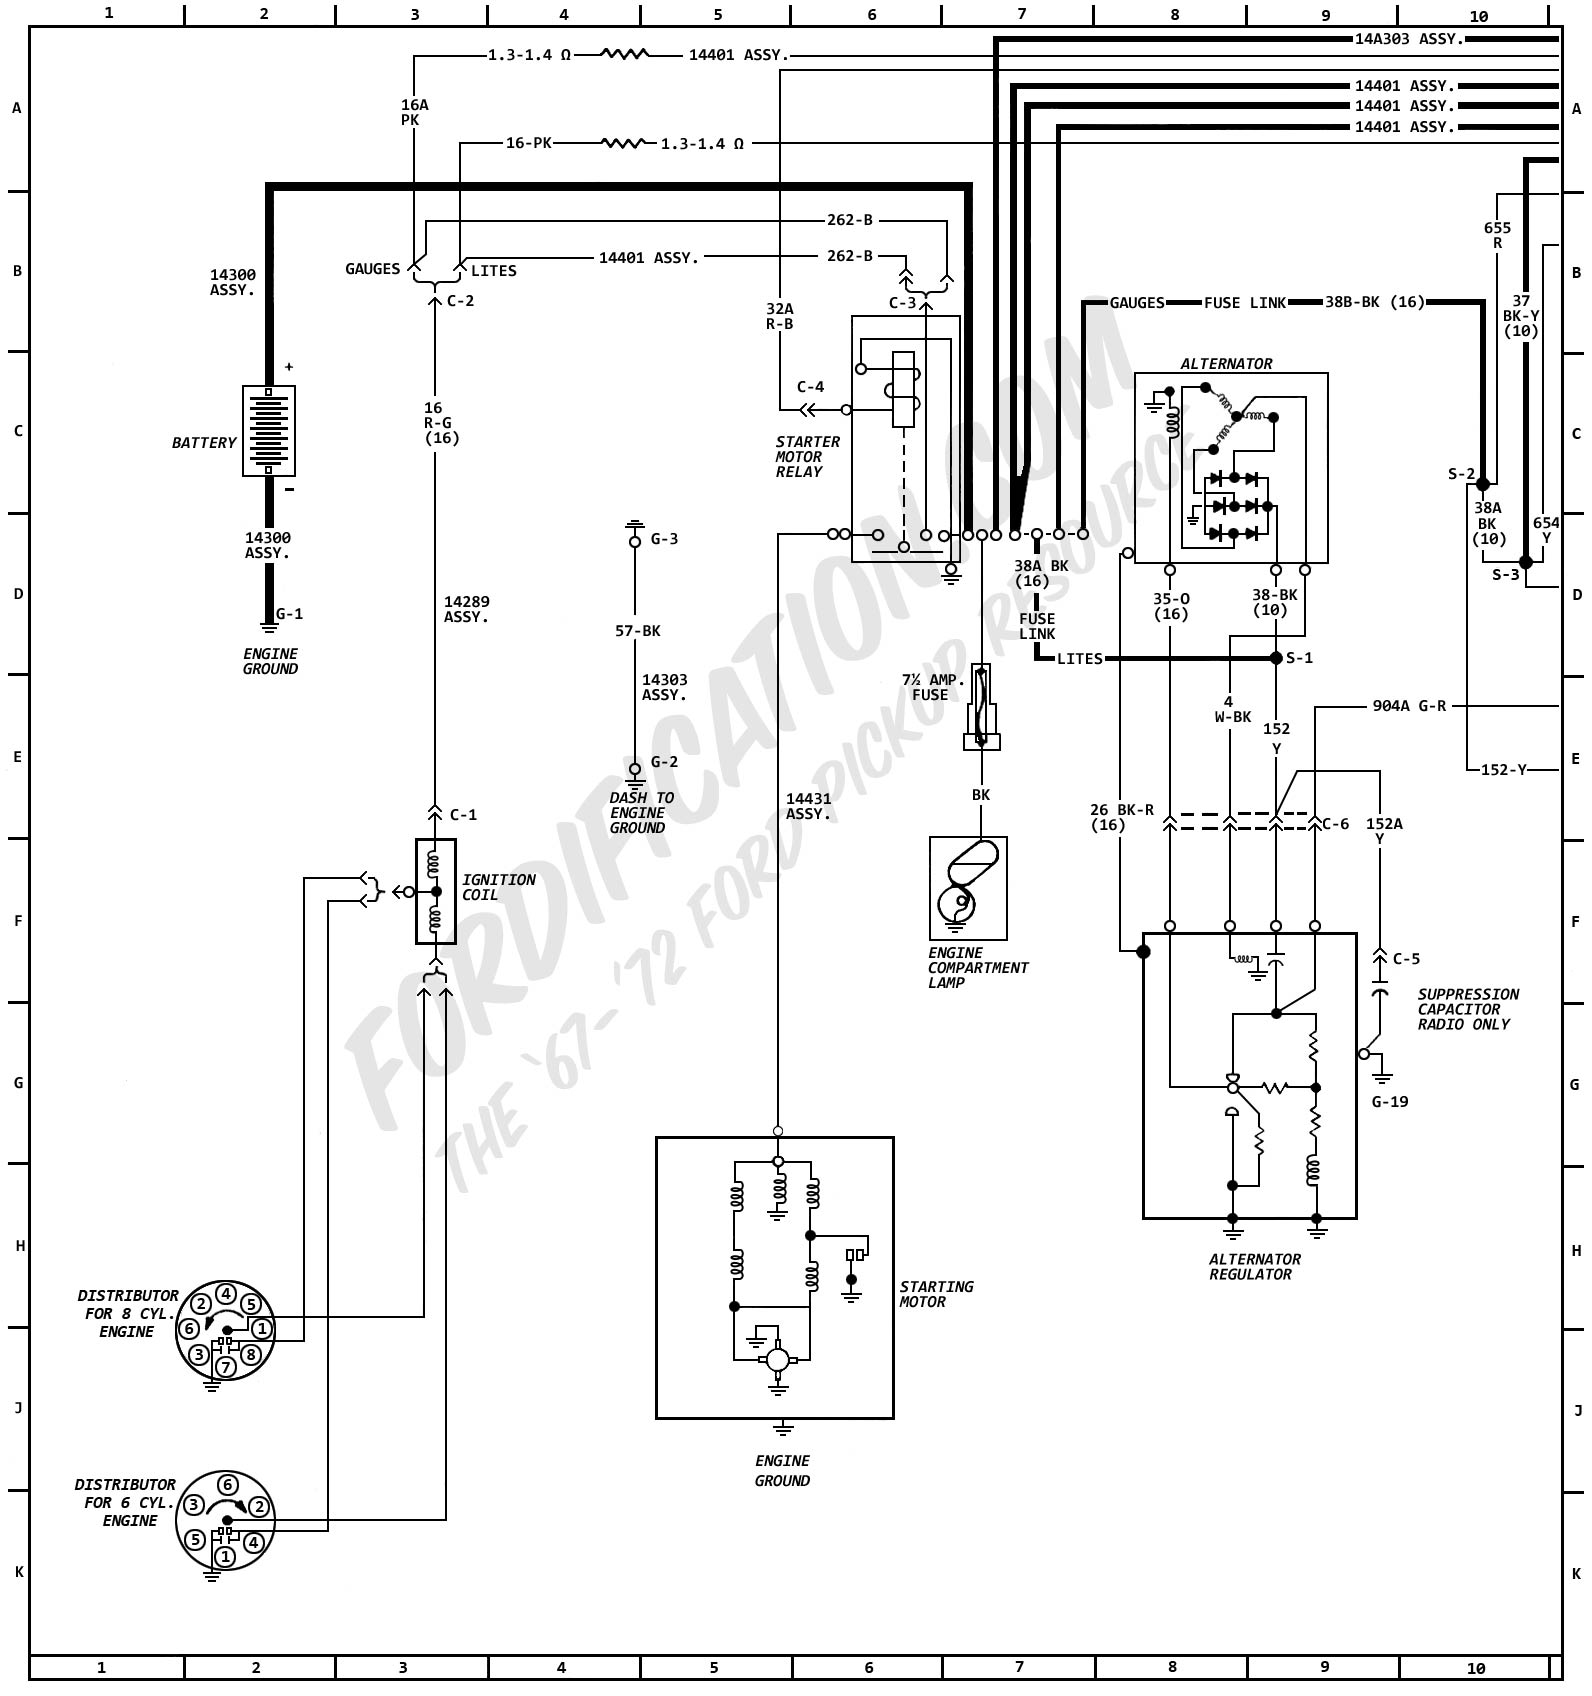 Ford F100 Ignition Module Wiring Diagram Smart Diagrams 1964 Switch 71 Schematic Rh Ogmconsulting Co 1956 1970